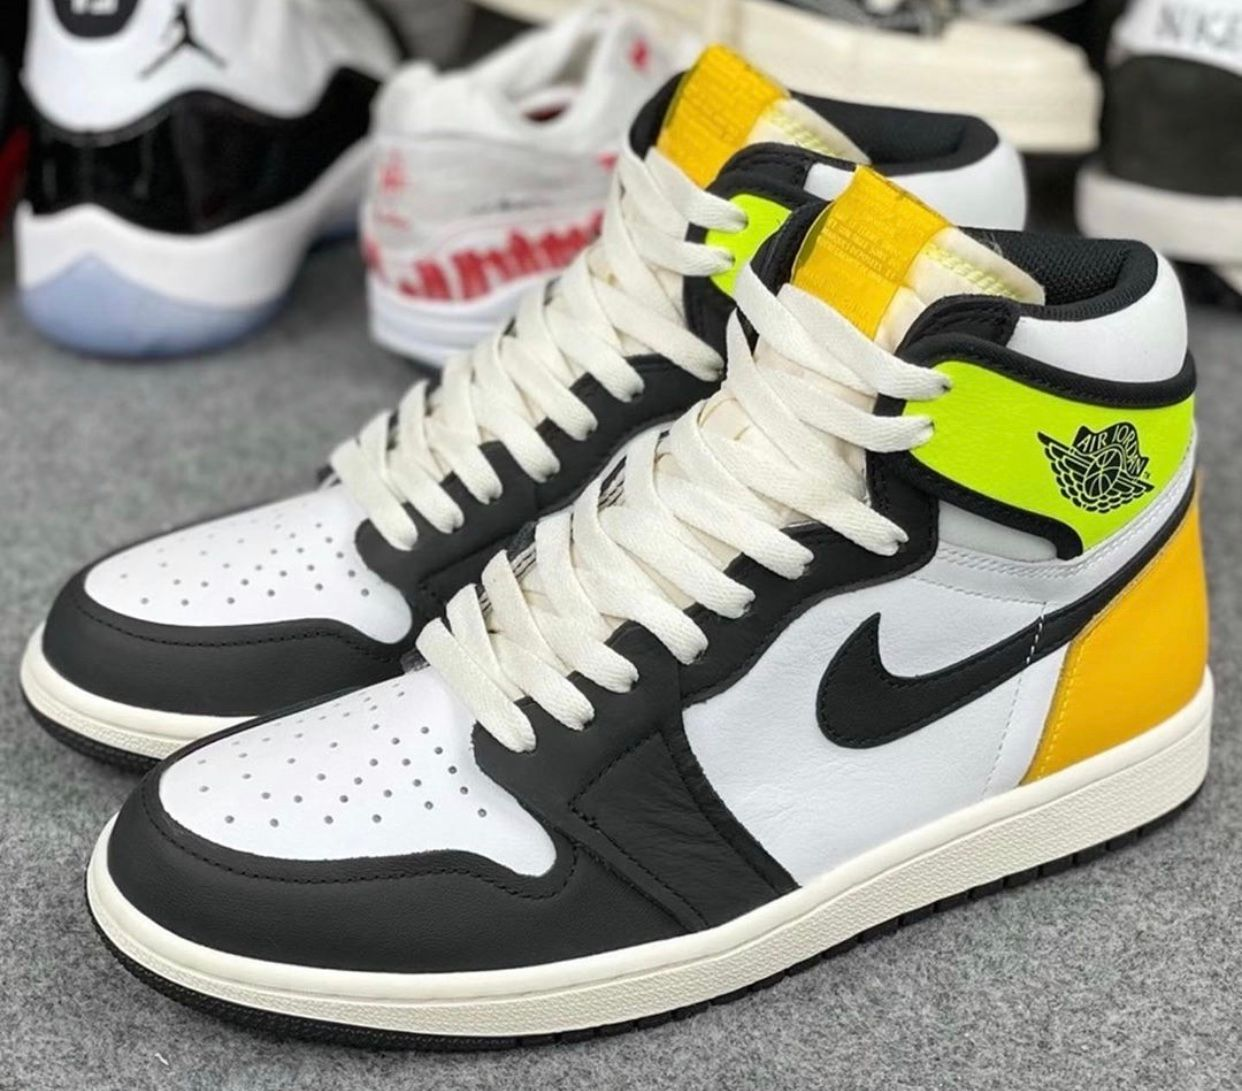 Air Jordan 1 'Volt/Gold'